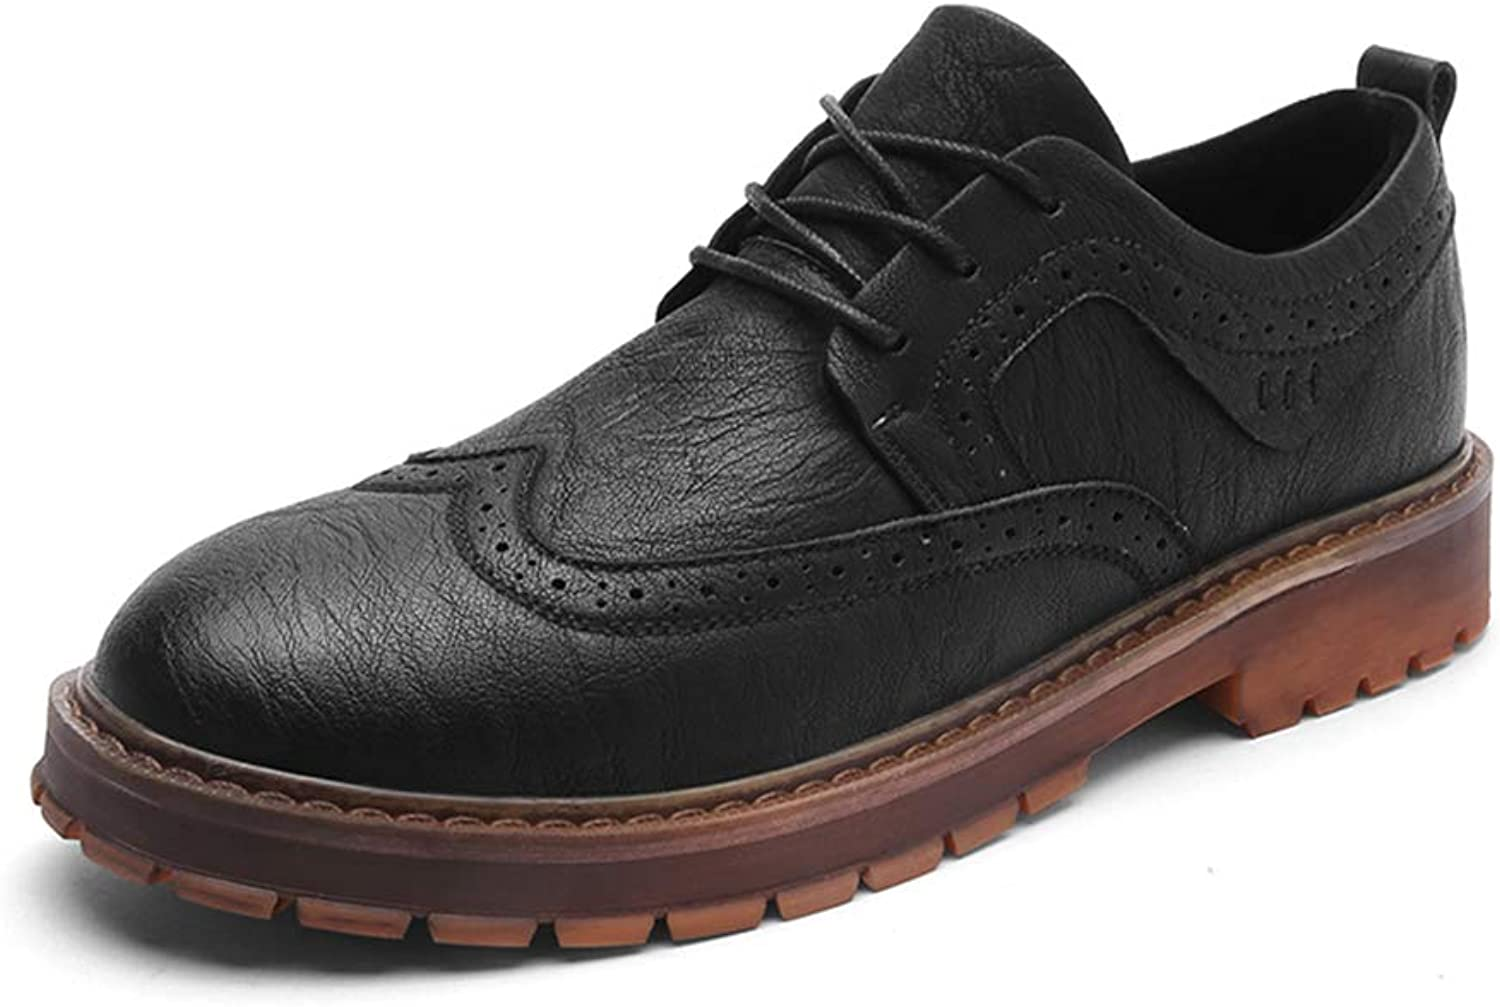 JIALUN-shoes Men's Simple Fashion Oxford Casual Classic Carving Lace Up Retro Brogue shoes